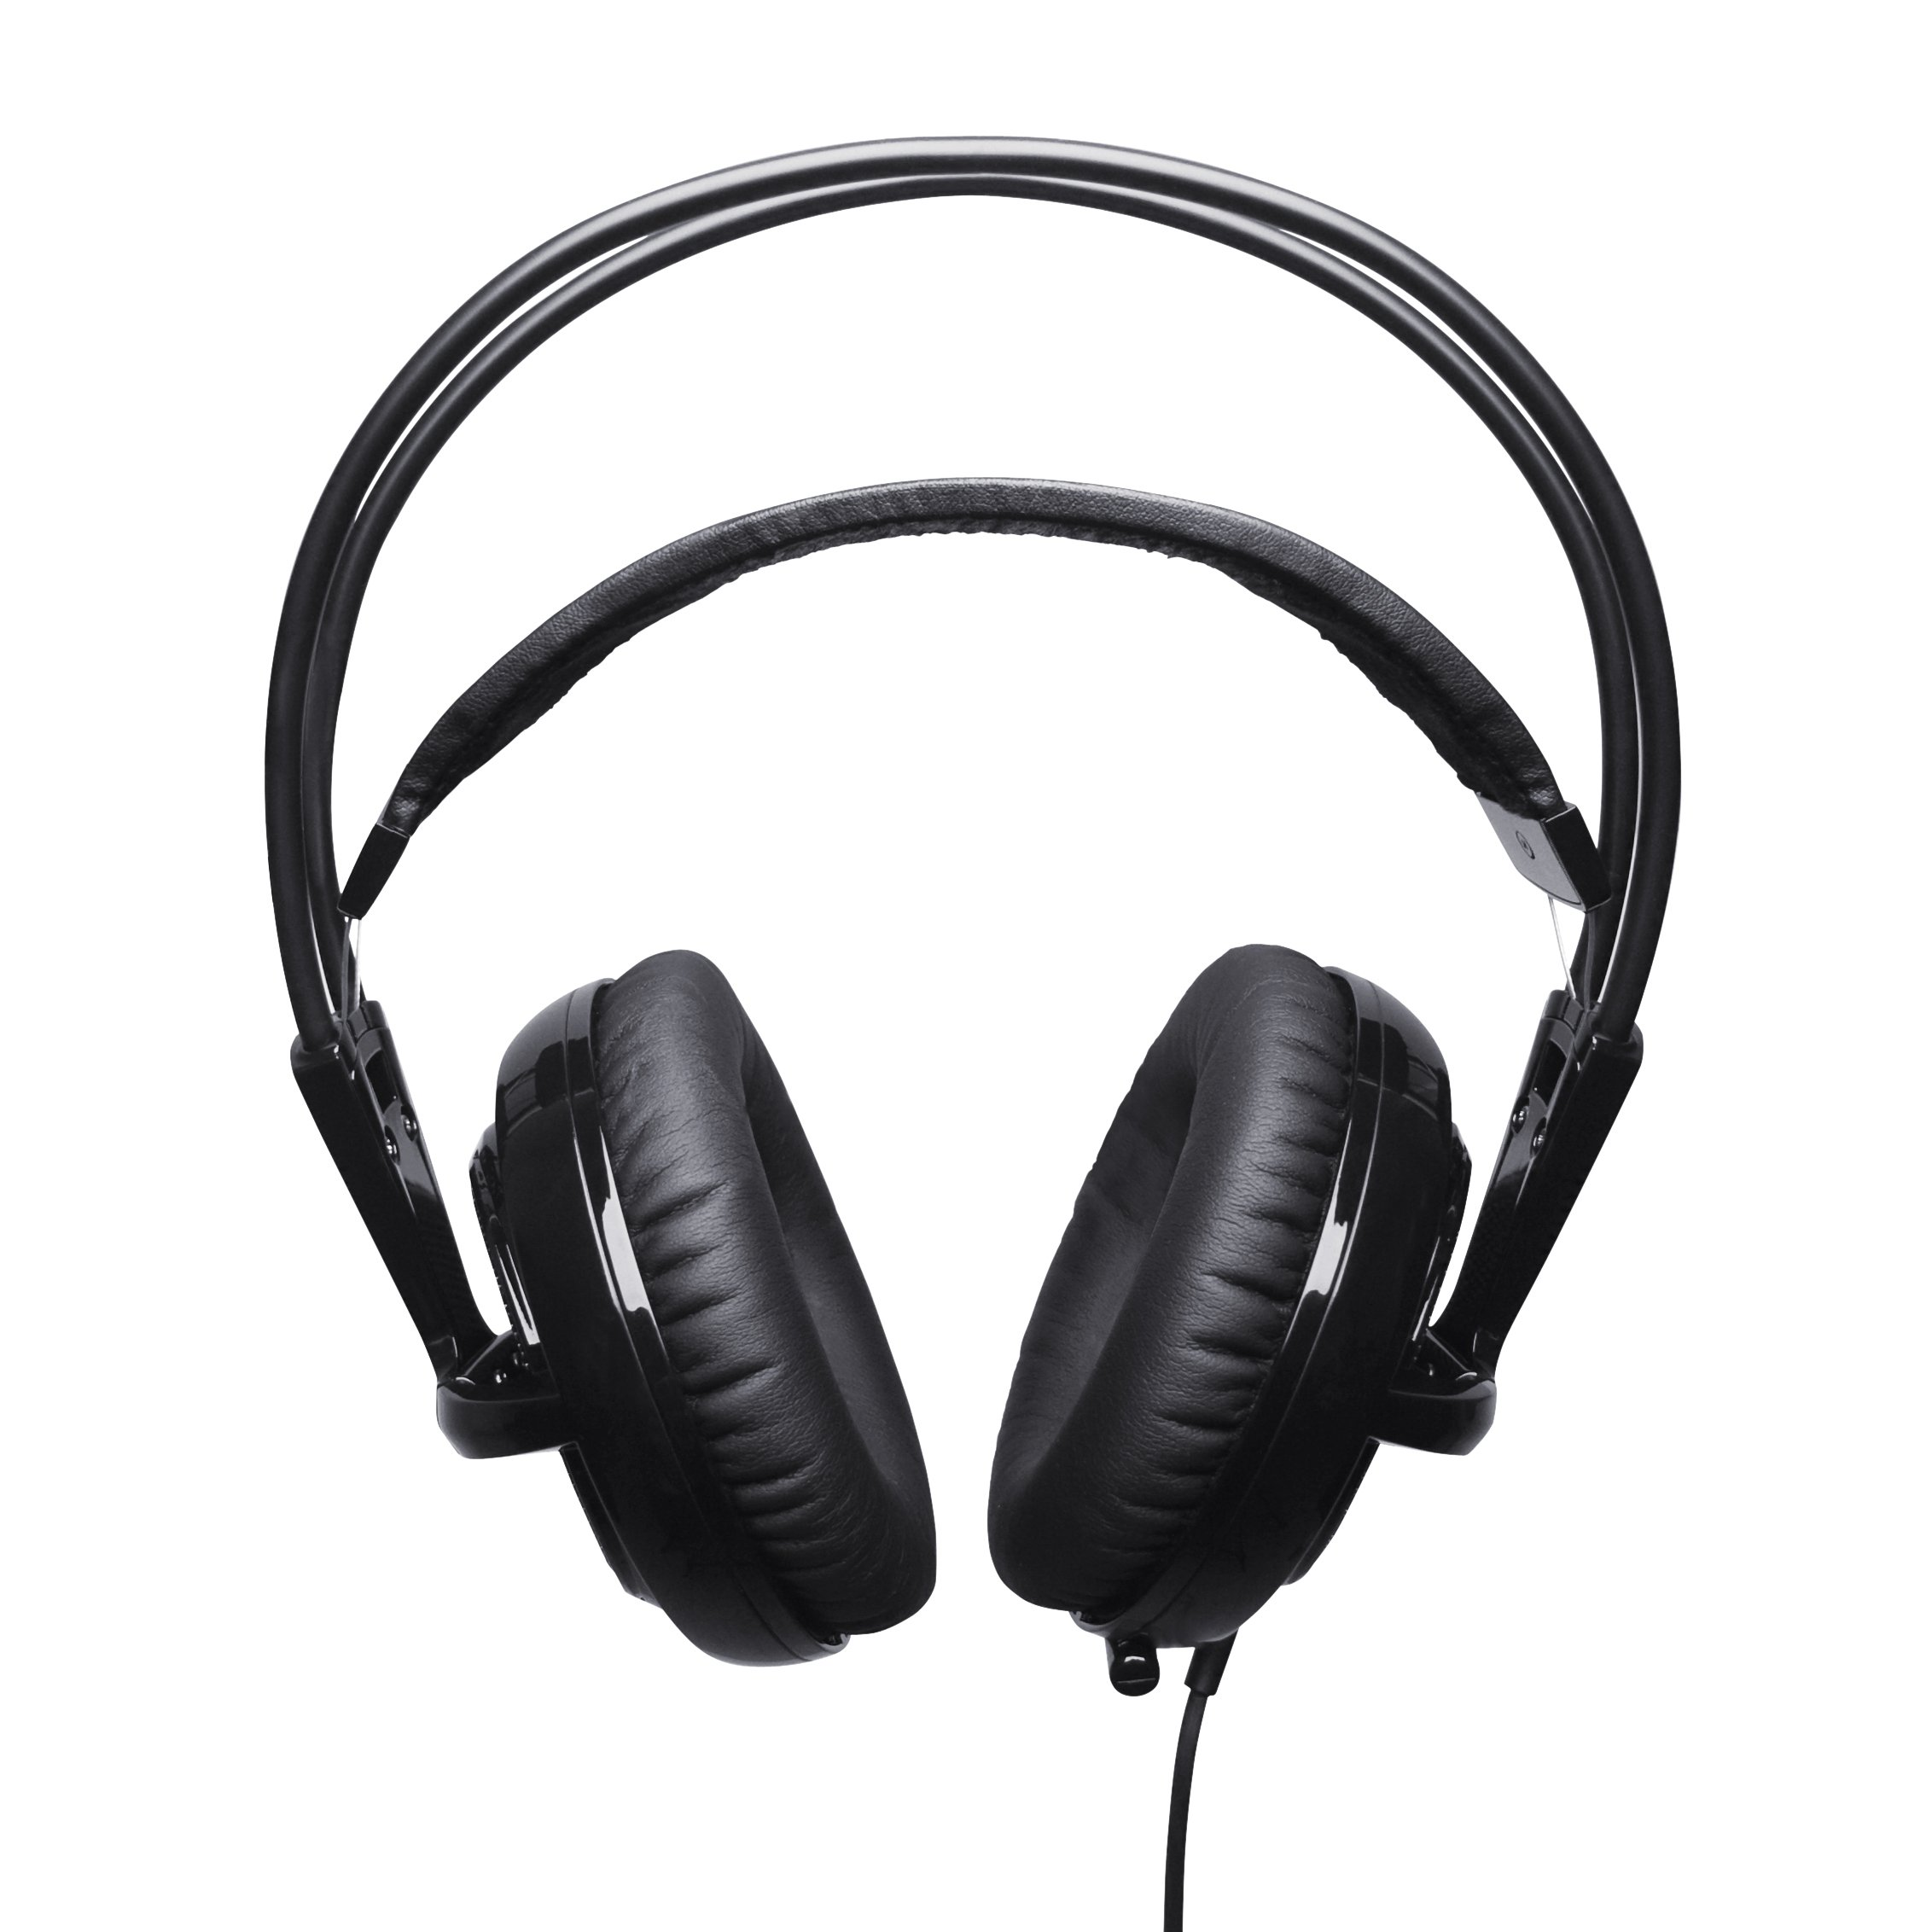 SteelSeries Siberia v2 Full-Size USB Gaming Headset with Virtual Surround 7.1 Sound (Black)